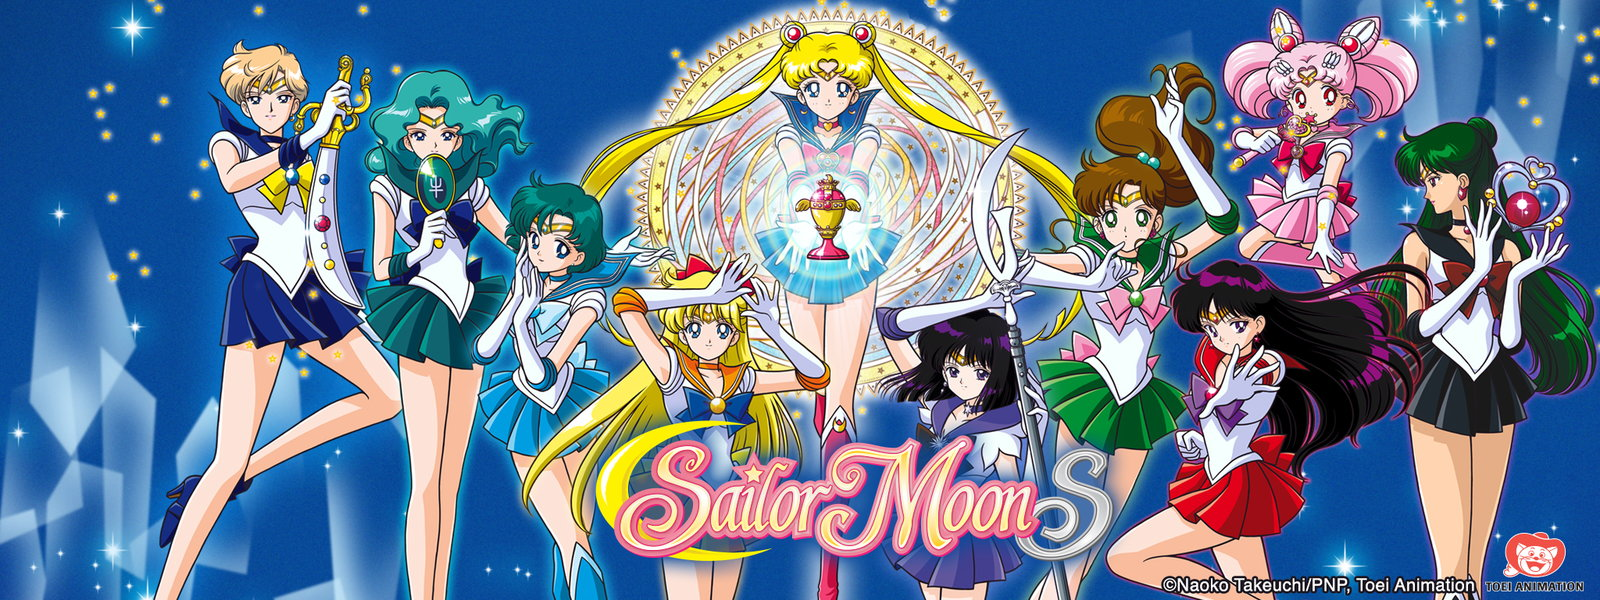 Lessons 90s Kids Learned From Sailor Moon